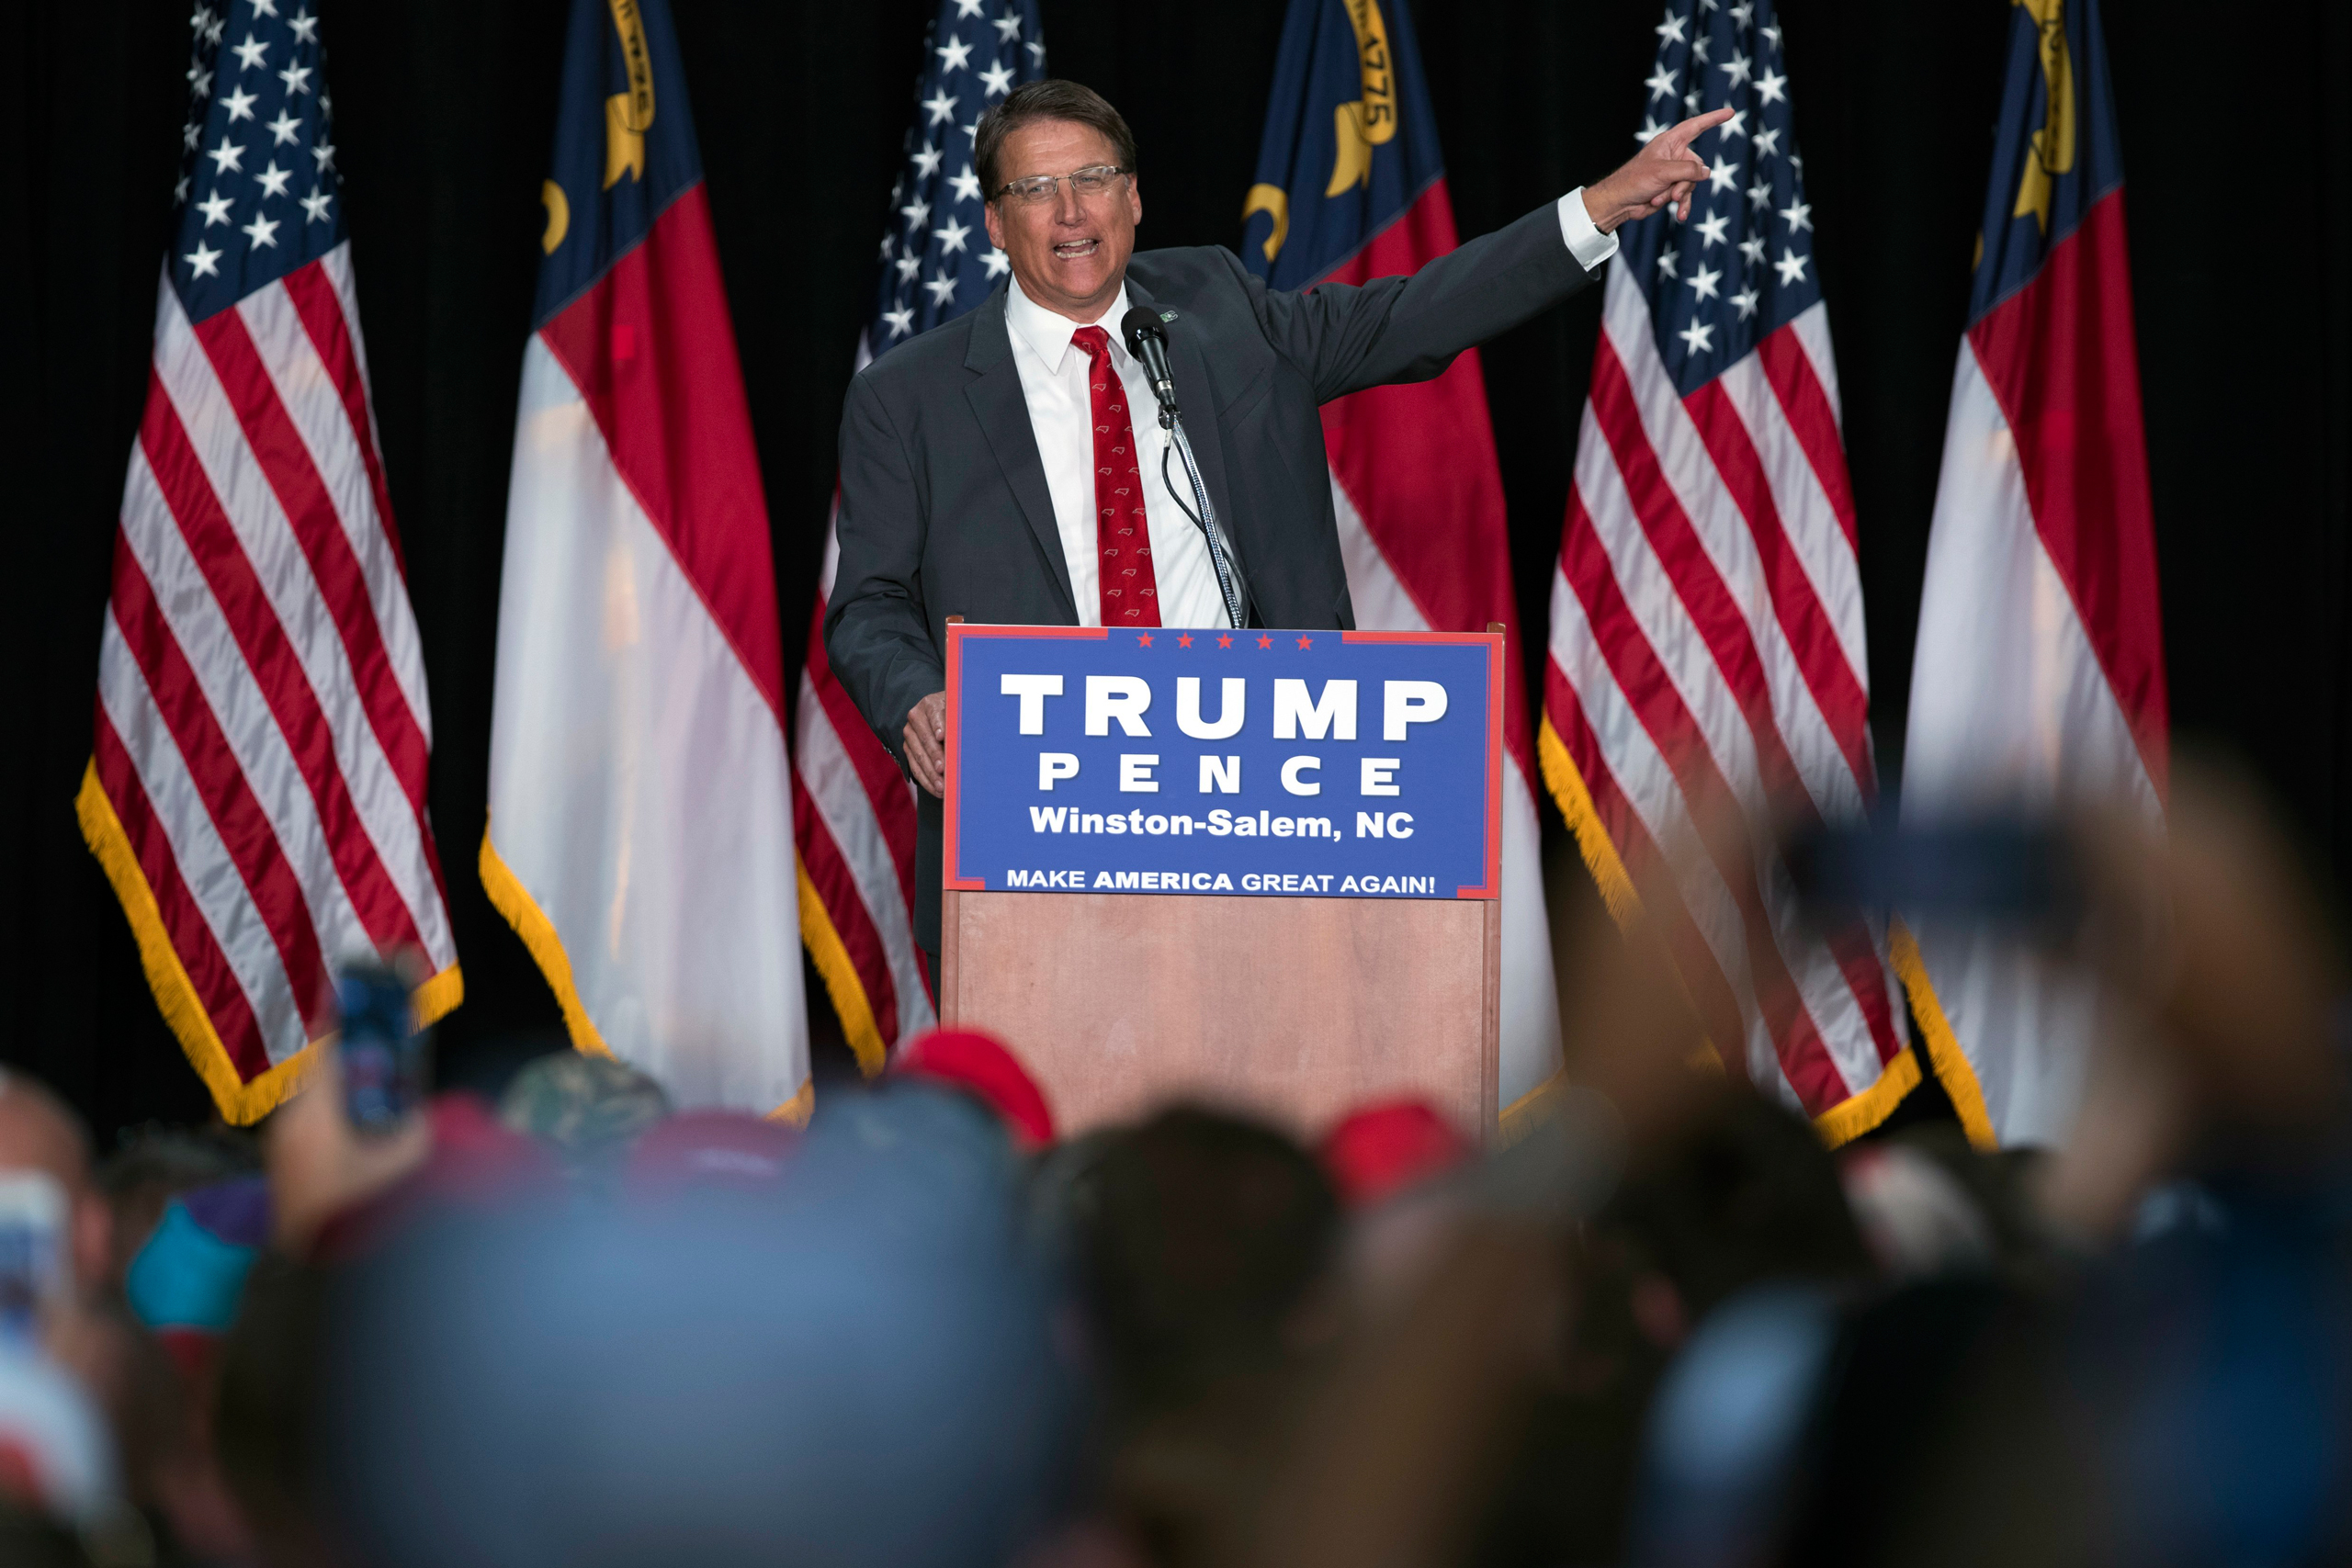 Gov. Pat McCrory speaks during a campaign rally supporting Republican presidential candidate Donald Trump  in Winston-Salem, N.C., on July 25, 2016.